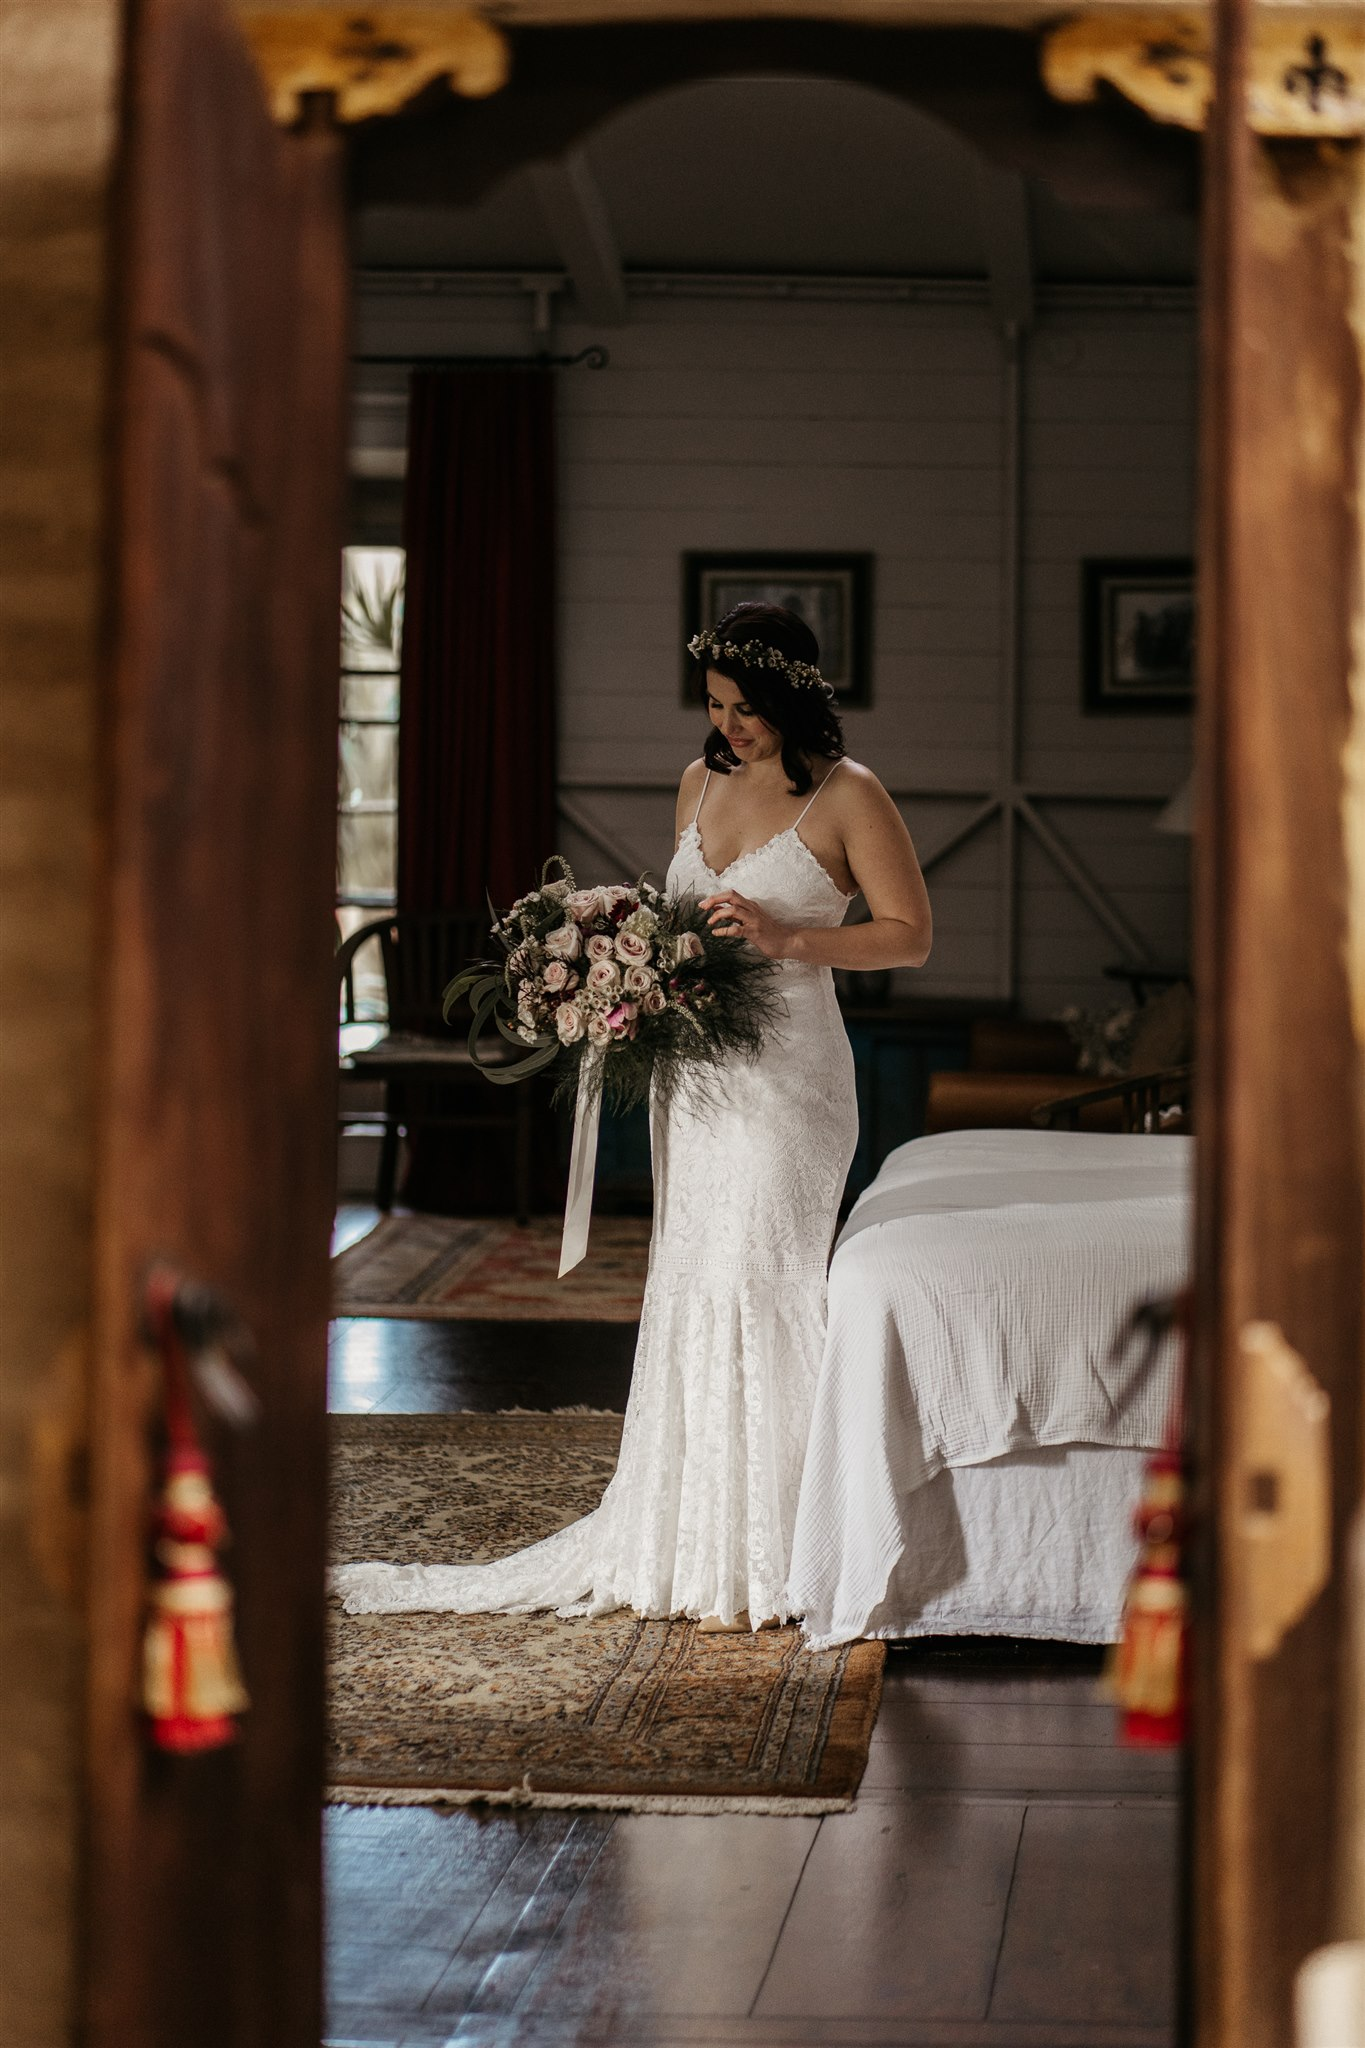 wander and follow images byron bay weddings photography venue bridal gown bouquet